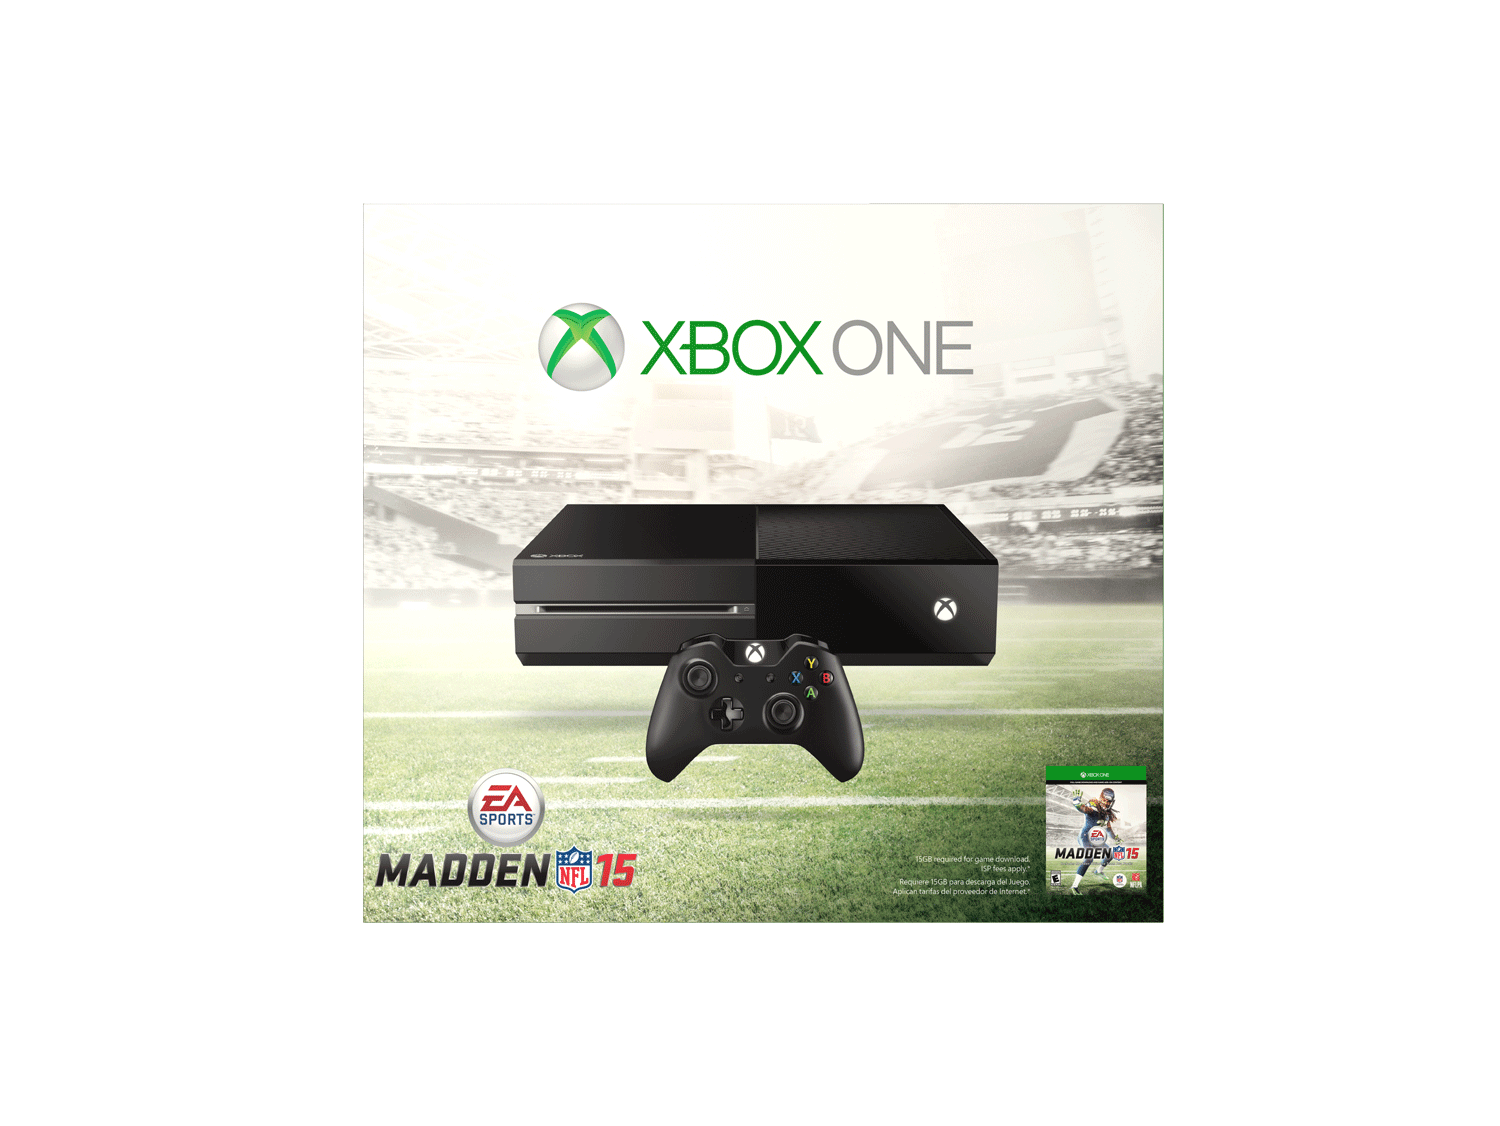 xbox-one-console-madden-fob-rgb | Nothing Is True Xbox One White Console Sunset Overdrive